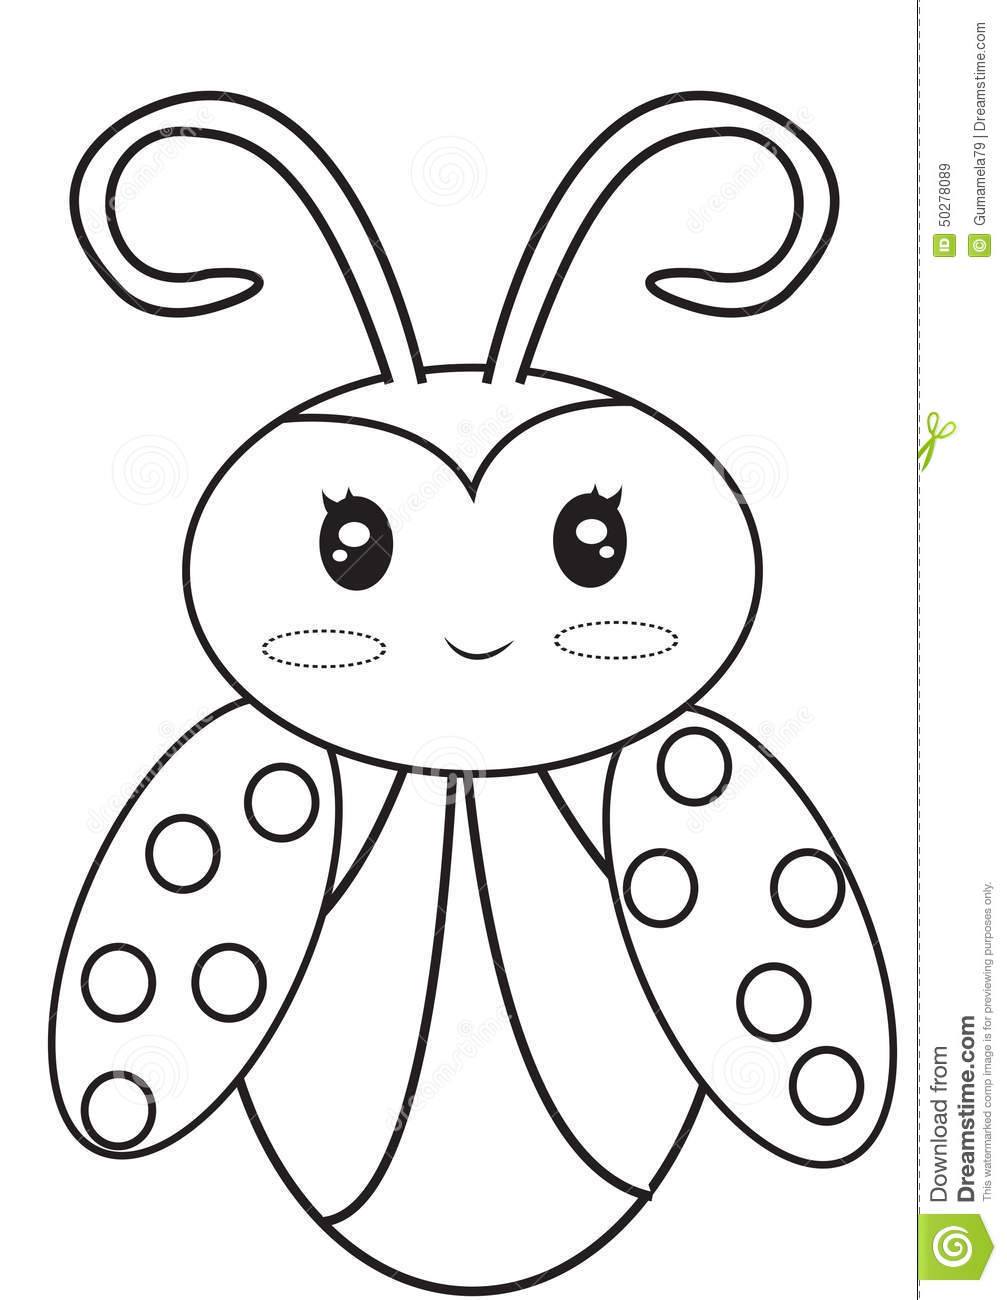 Ladybug coloring page stock illustration illustration of for Coloring pages of ladybugs